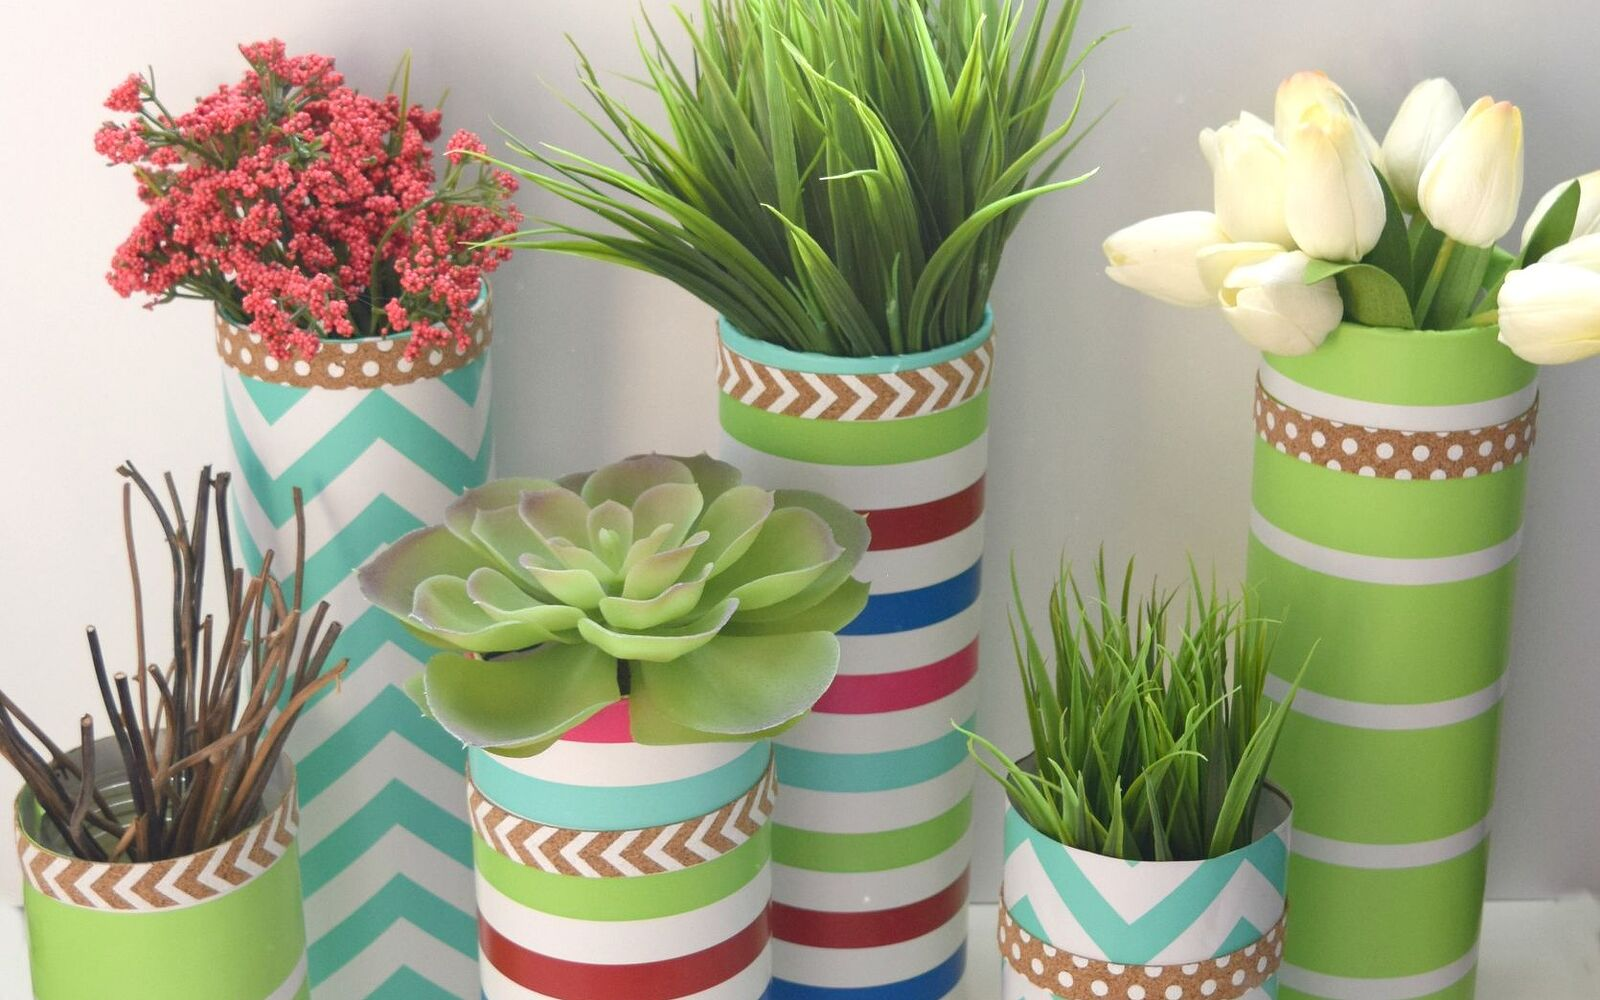 s 15 incredible vases you can make for your bestie on a budget, Use Colorful Decorative Wrapping Paper